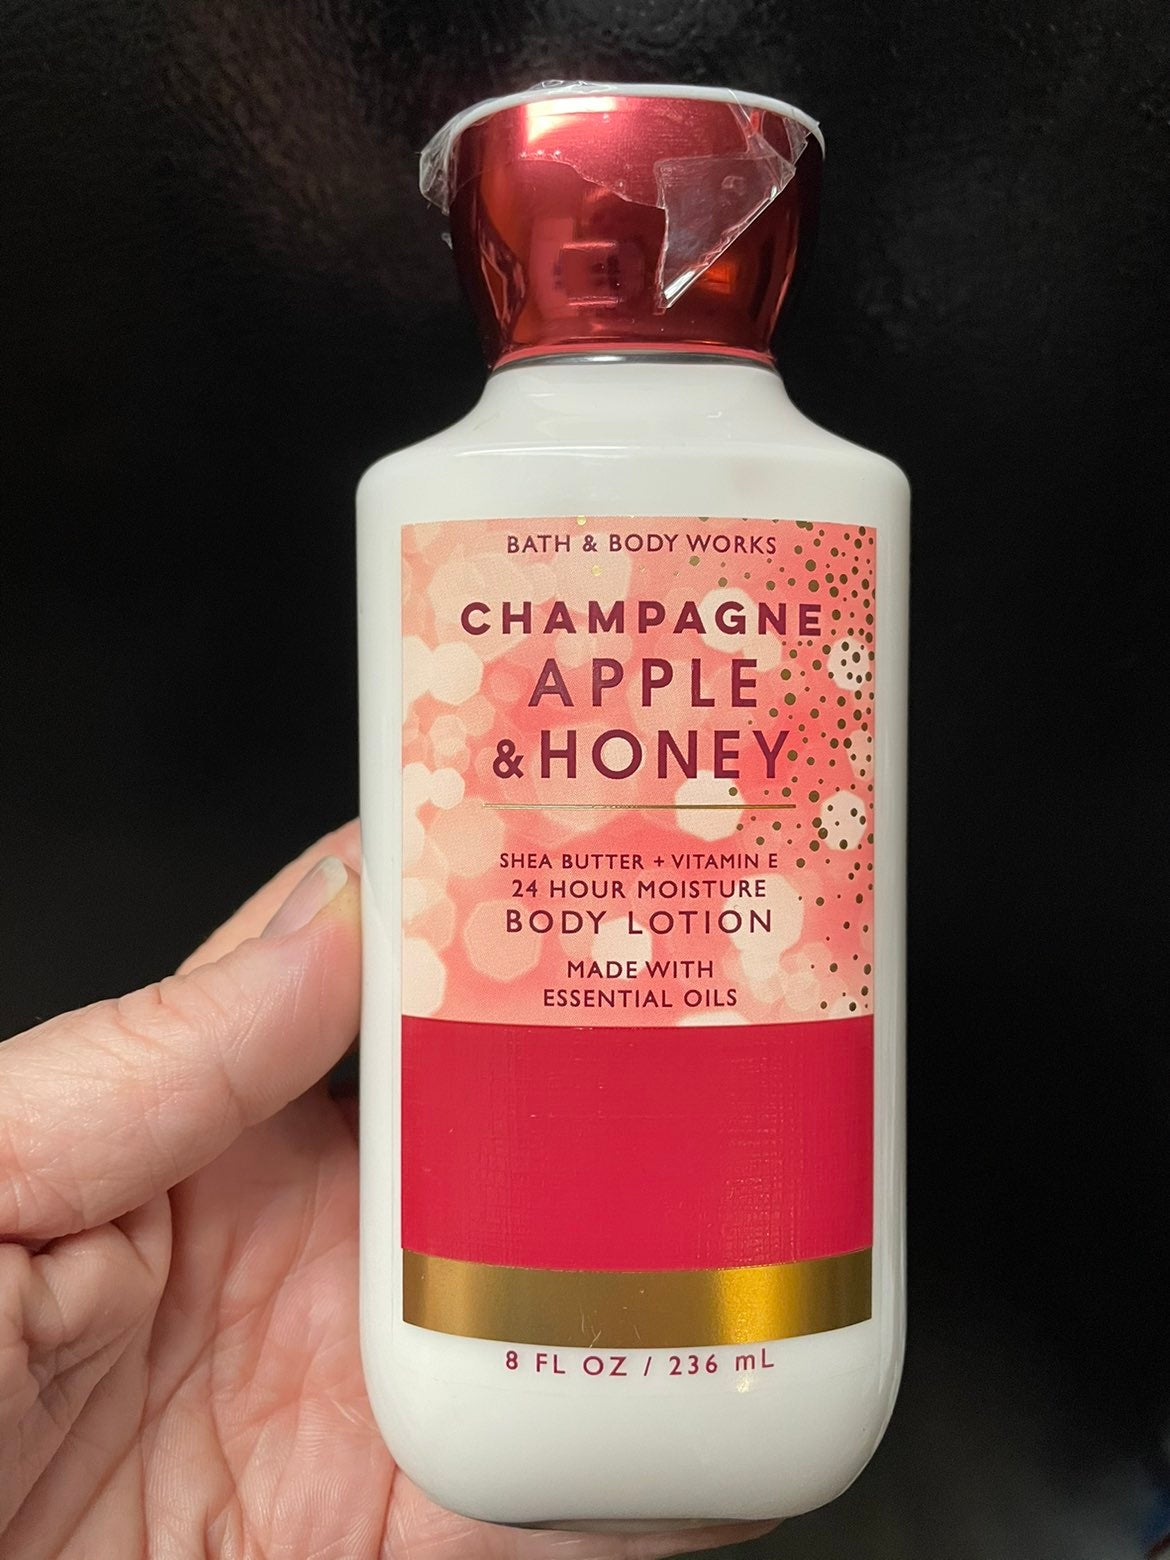 Champagne Apple & Honey lotion